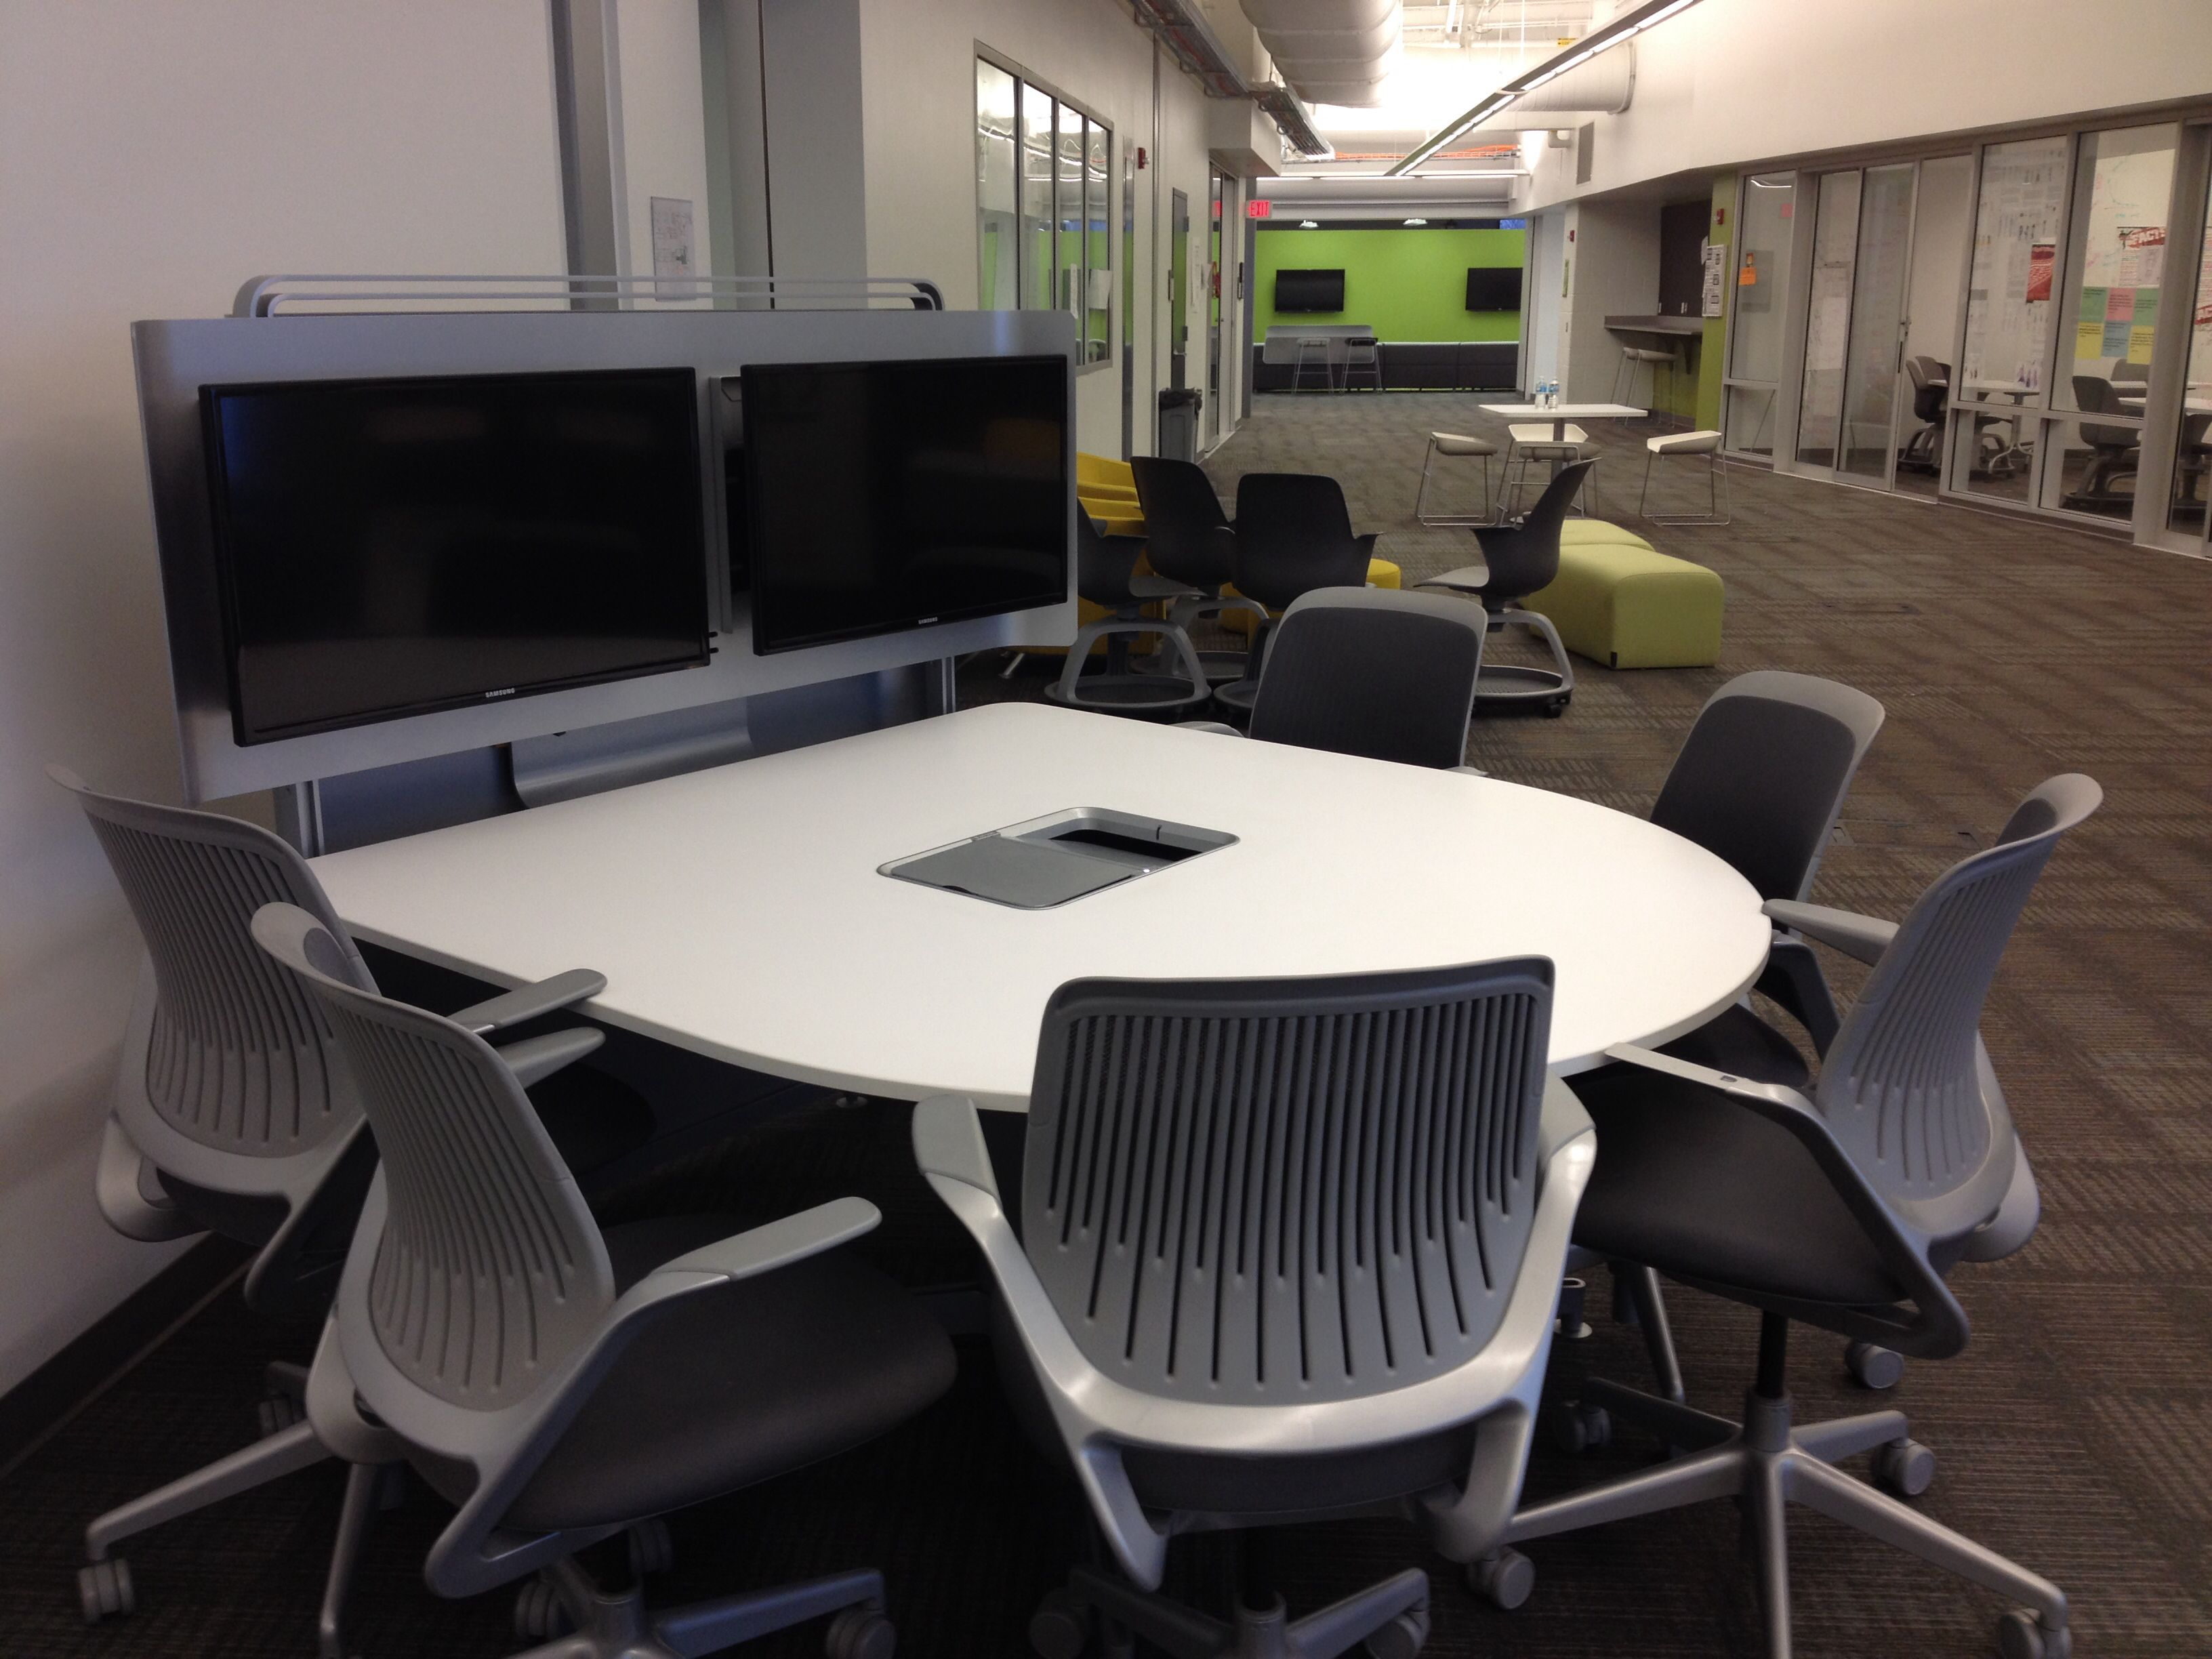 Innovative Classroom Seating Arrangements ~ Kent innovation high school collaboration center